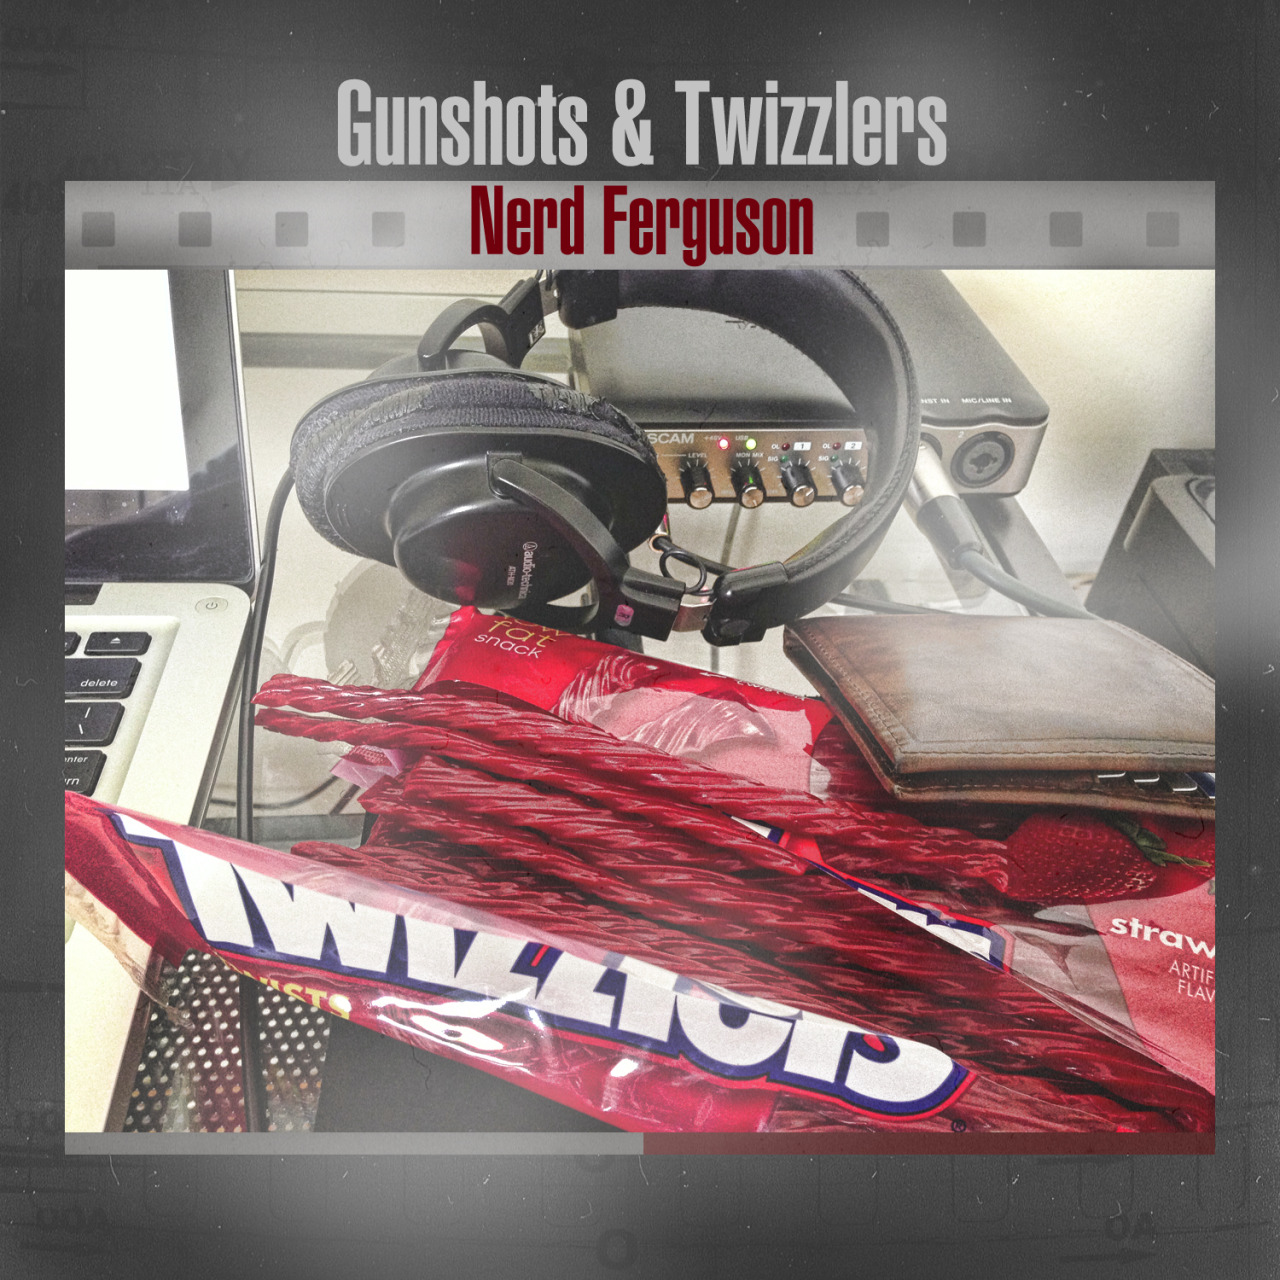 "nerdferguson: How Many Mics (Feat. Taeiom) (Prod. by Nerd Ferguson)  Pizza Party (Feat. DeFakto, Taeiom, and Arlene Marie) (Prod. by Nerd Ferguson) I Miss My Jumpoff (Prod. by Lee Treble) Dark (Prod. by Justyn Waves) Girlfriend (Feat. Just Sincere & Jvon Bishop) (Prod. by Nerd Ferguson)  I'm Outta Here (Feat. Taeiom) (Prod. by Lee Treble)  Breaking Bad (Prod. by Lee Treble)  Hands In The Air (Feat. Allen York) (Prod. by Lee Treble & Nerd Ferguson) LISTEN HERE! Untitled (Prod. by Pat Preezy) Never Be The Same Again (Feat. Julee) (Prod. by Lee Treble & Nerd Ferguson) LISTEN HERE! Hyundai Elantra Music III (Feat. DeFakto) (Prod. by Lee Treble) When The Song's Done (Prod. by Pat Preezy)  Bright Lights (Feat. Julee) (Prod. by Mike ""D-vine"" Harris)  Oh No (Prod. by Nerd Ferguson)  It Was Fun While It Lasted (Prod. by Justyn Waves) Drops 5.27.13! www.nerdferg.com"